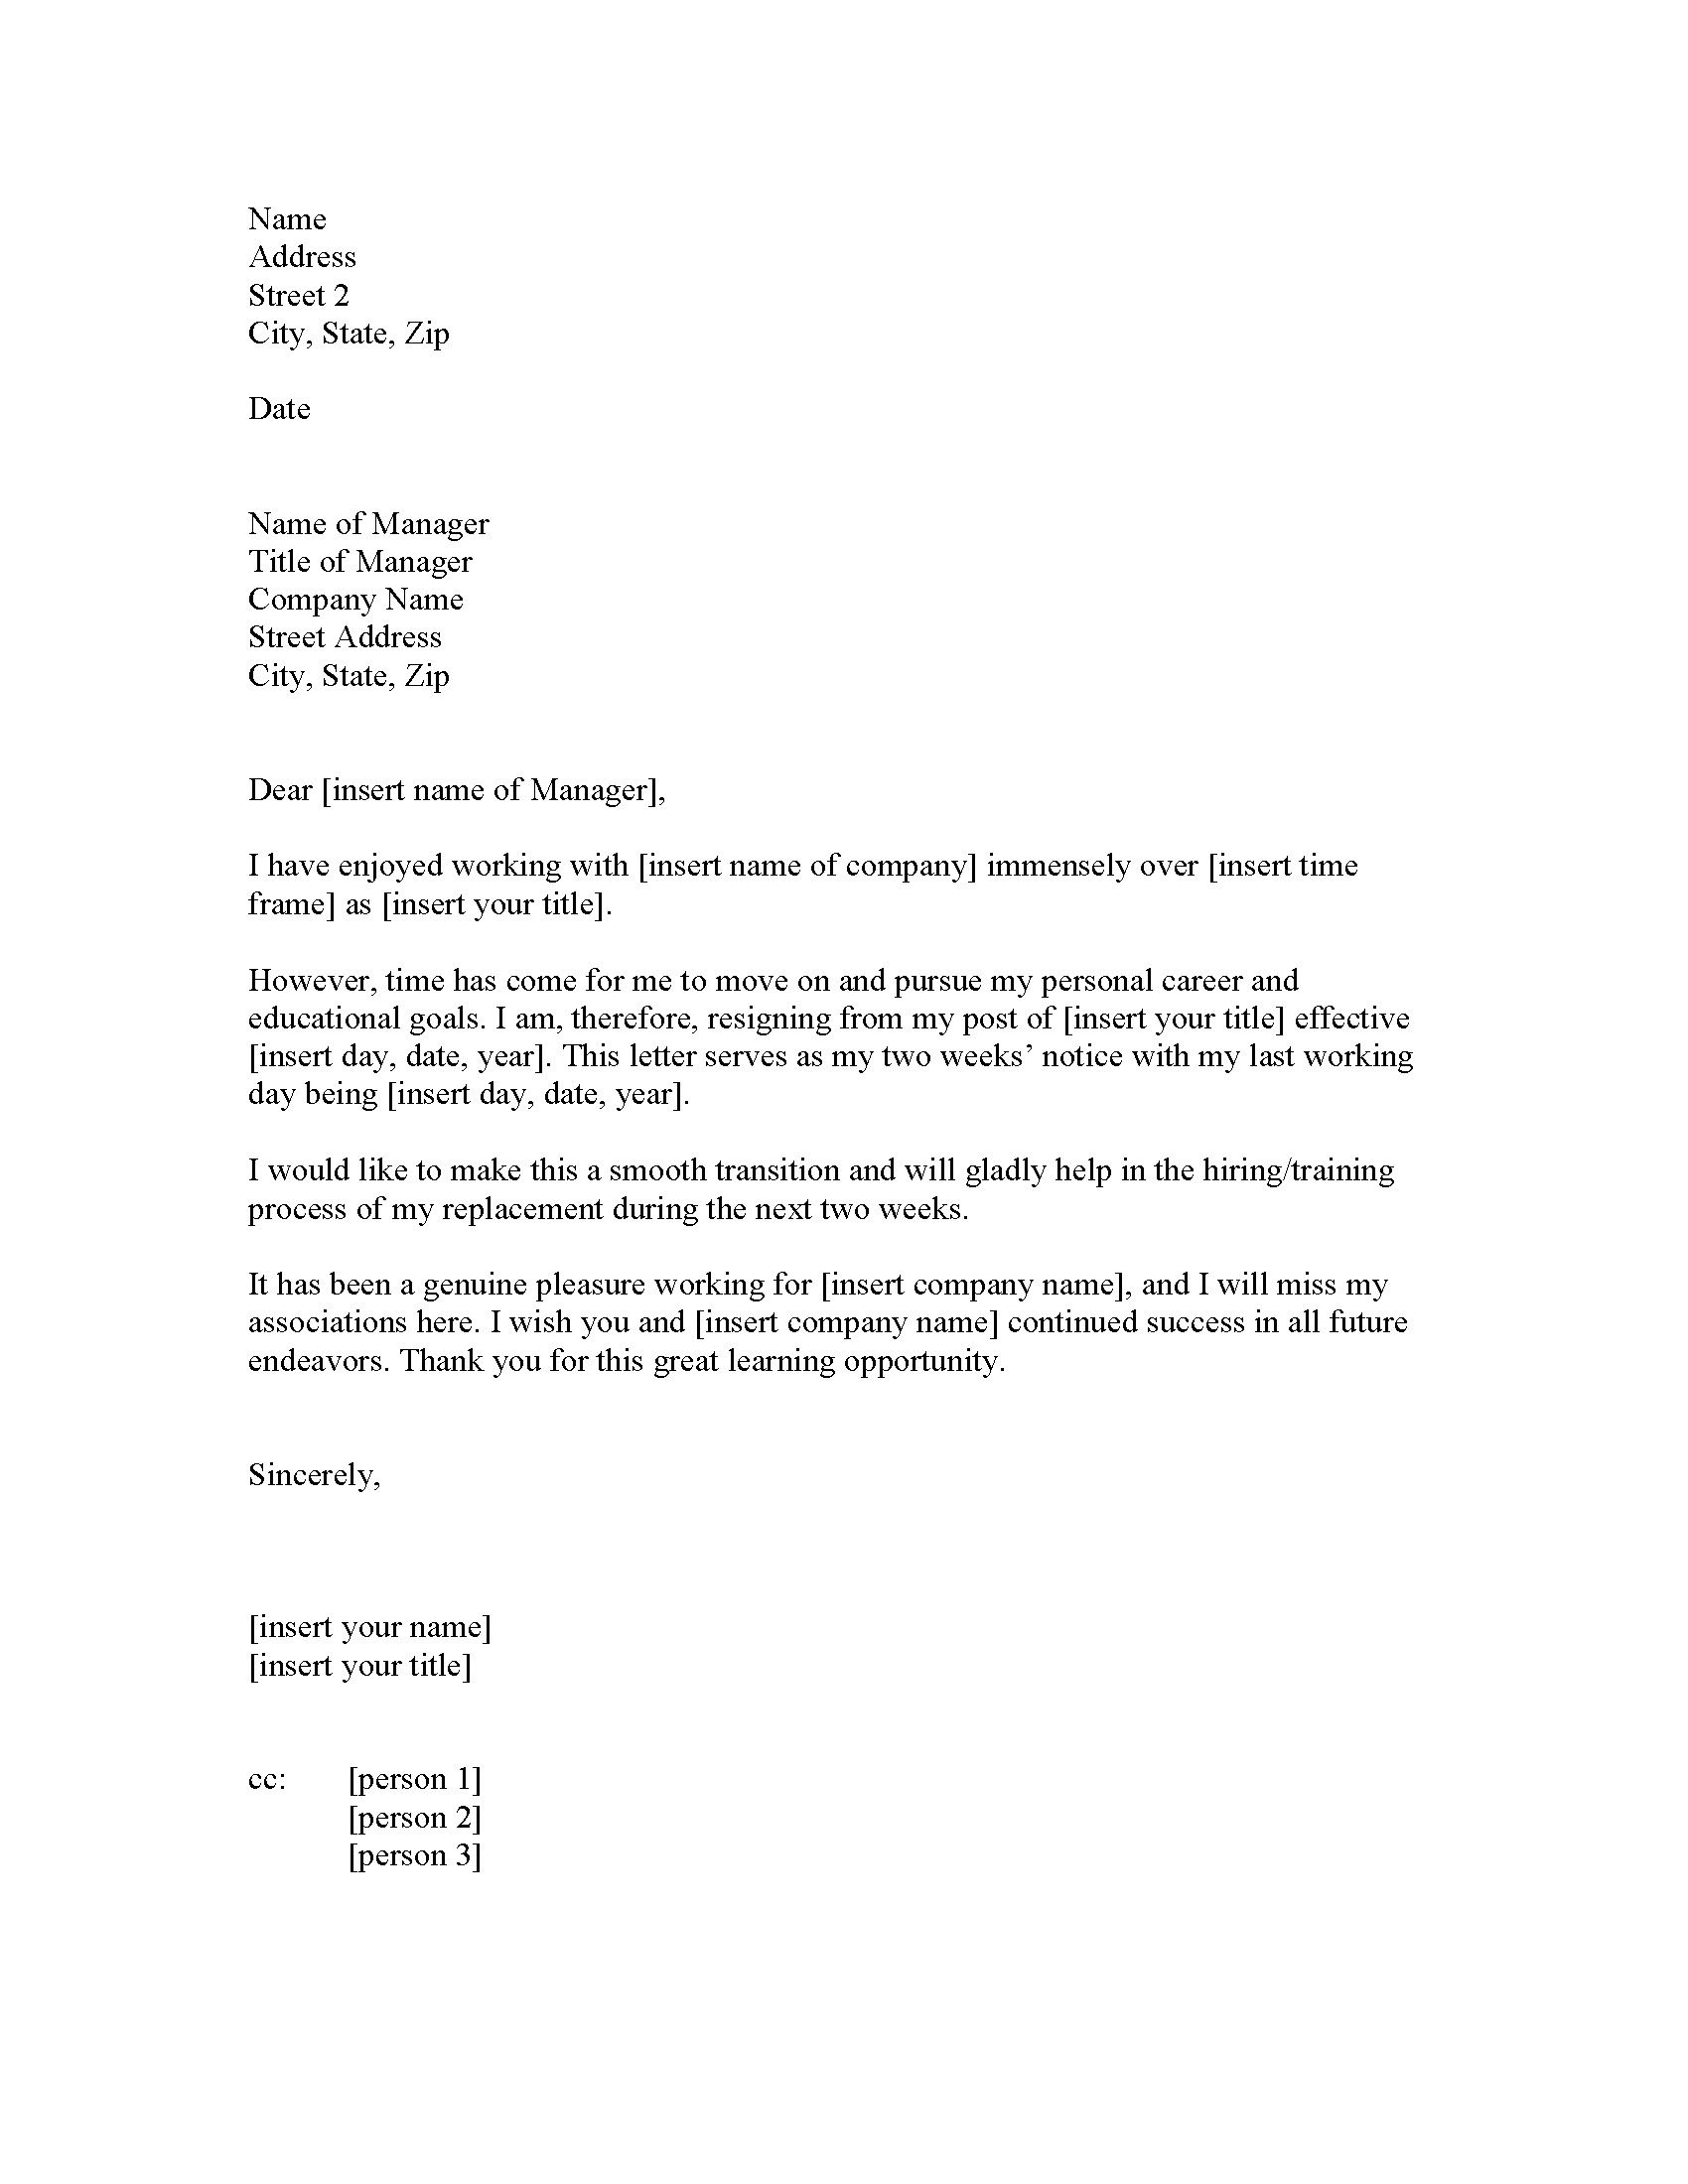 Job resignation letter samples dolapgnetband job resignation letter samples thecheapjerseys Gallery